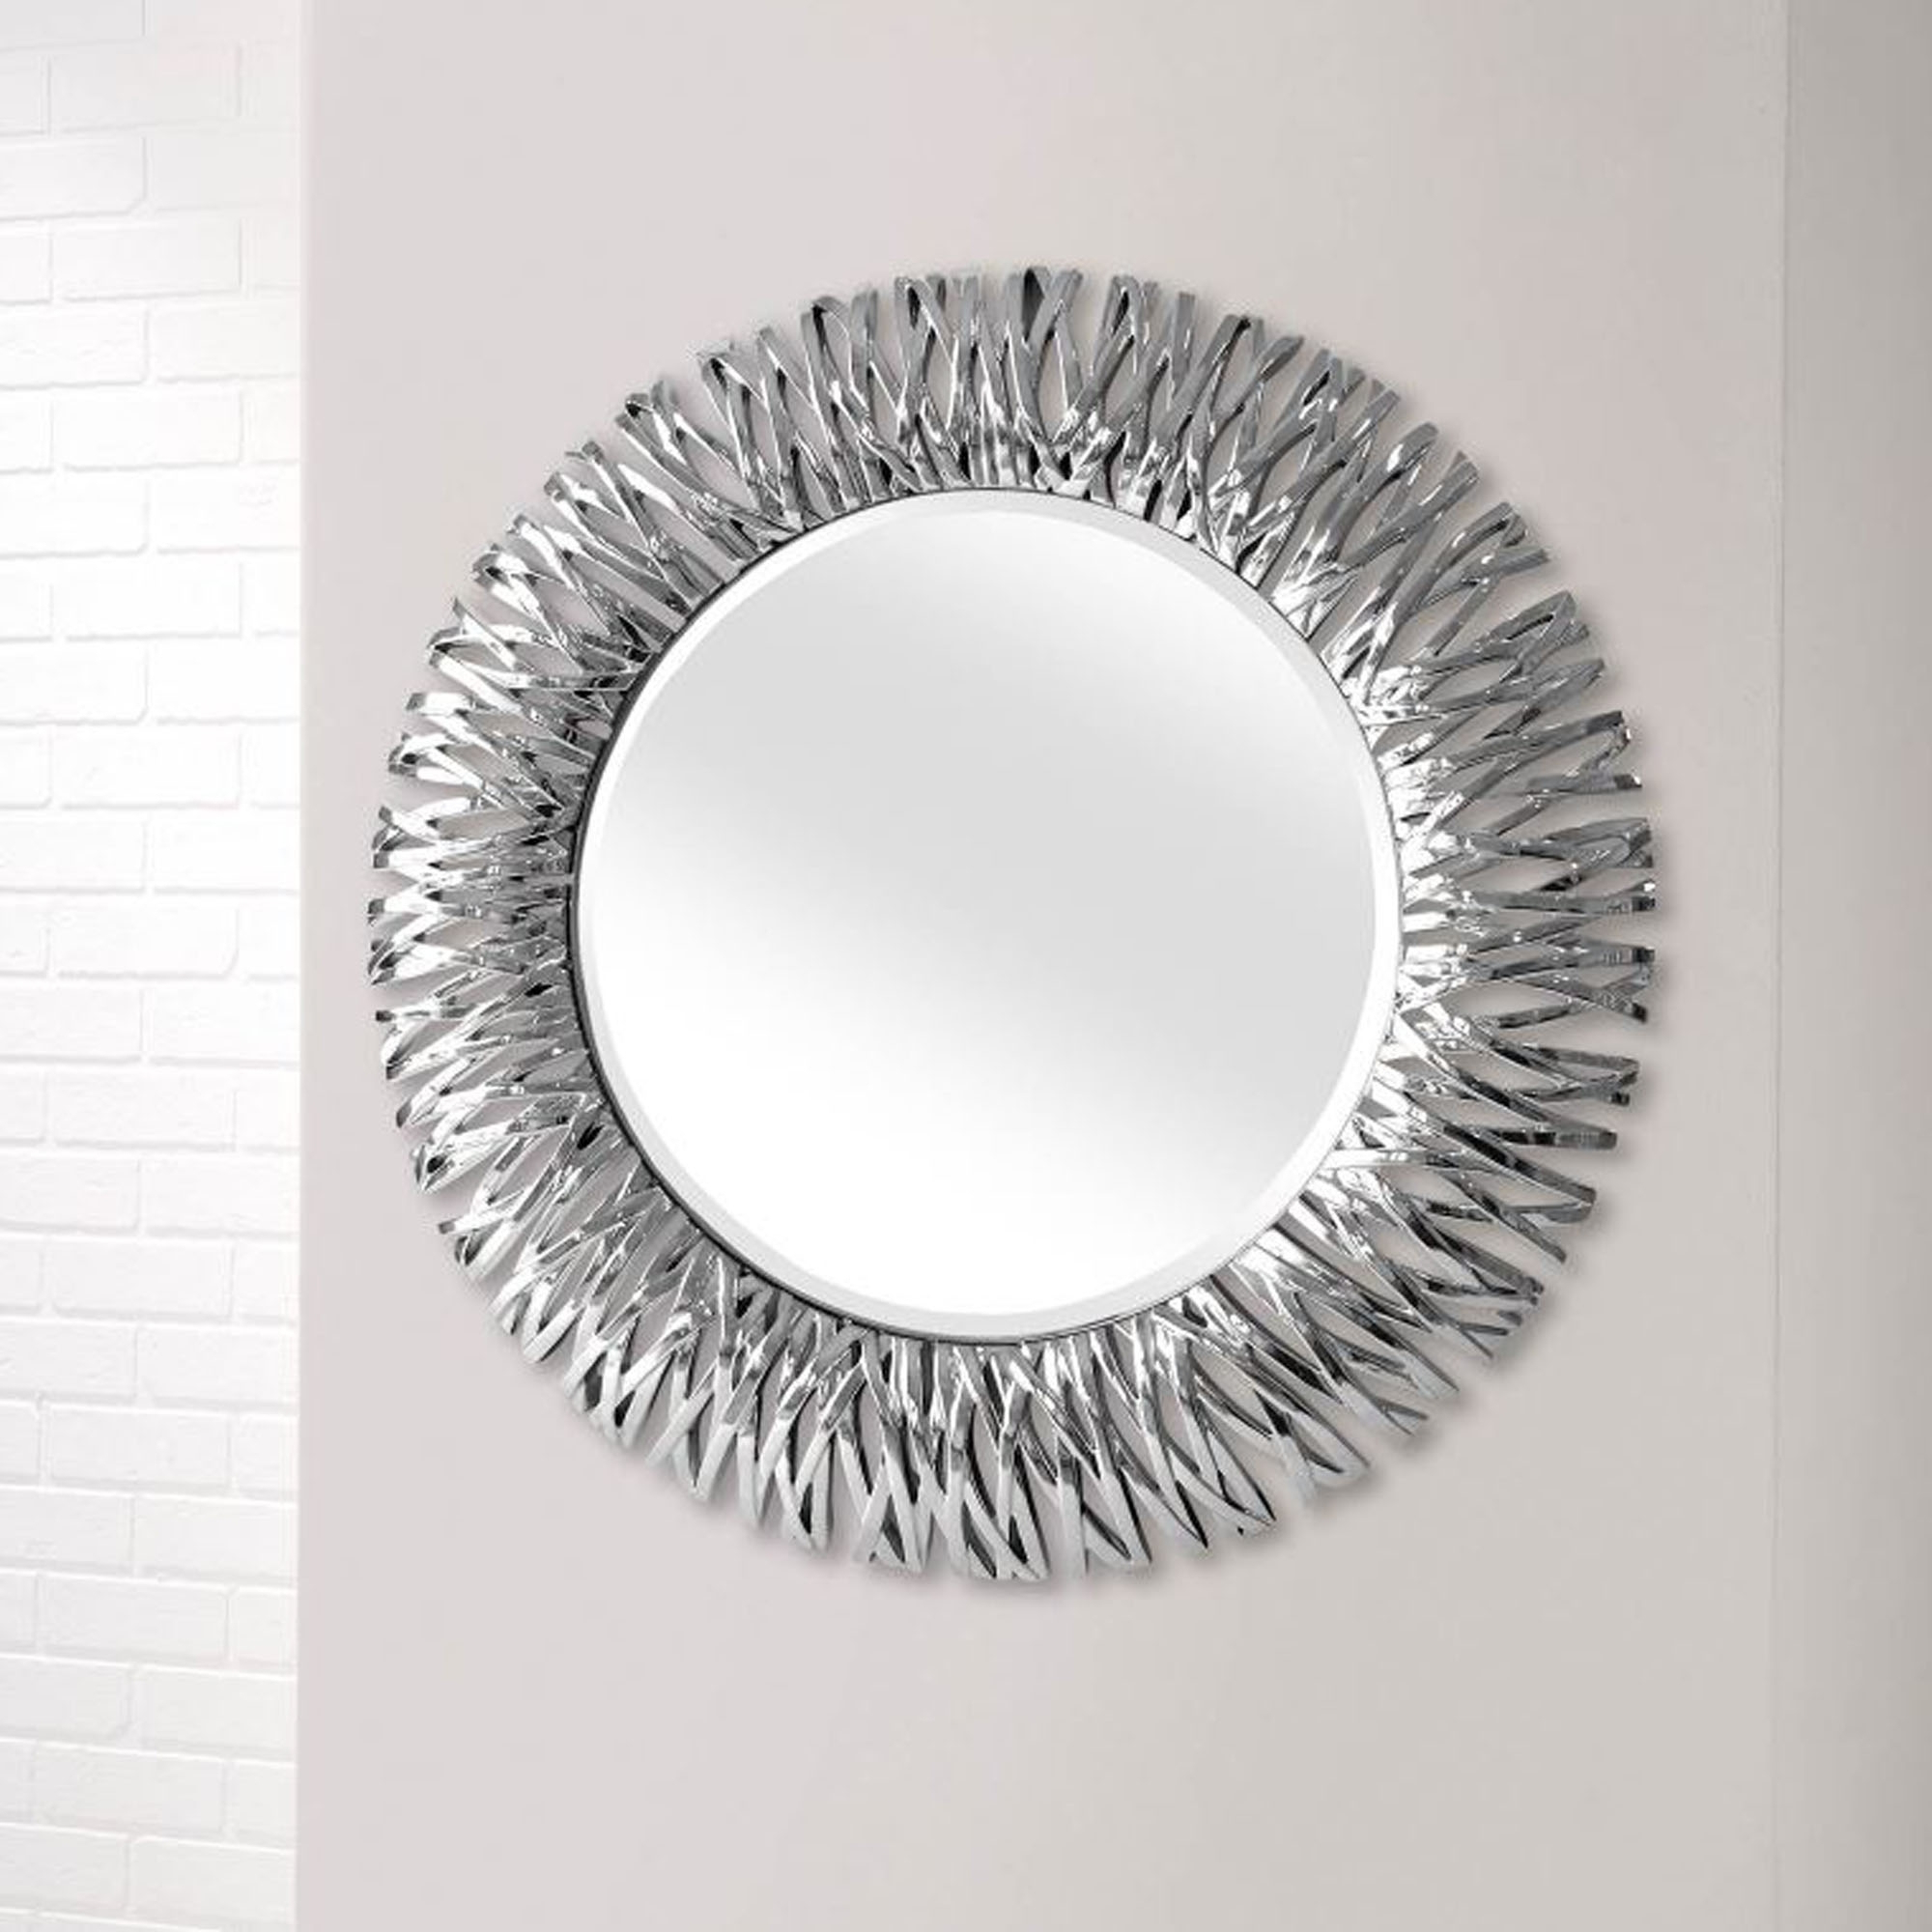 Most Popular Circular Wall Mirrors Throughout Detailed Chrome Silver Round Wall Mirror (View 3 of 20)